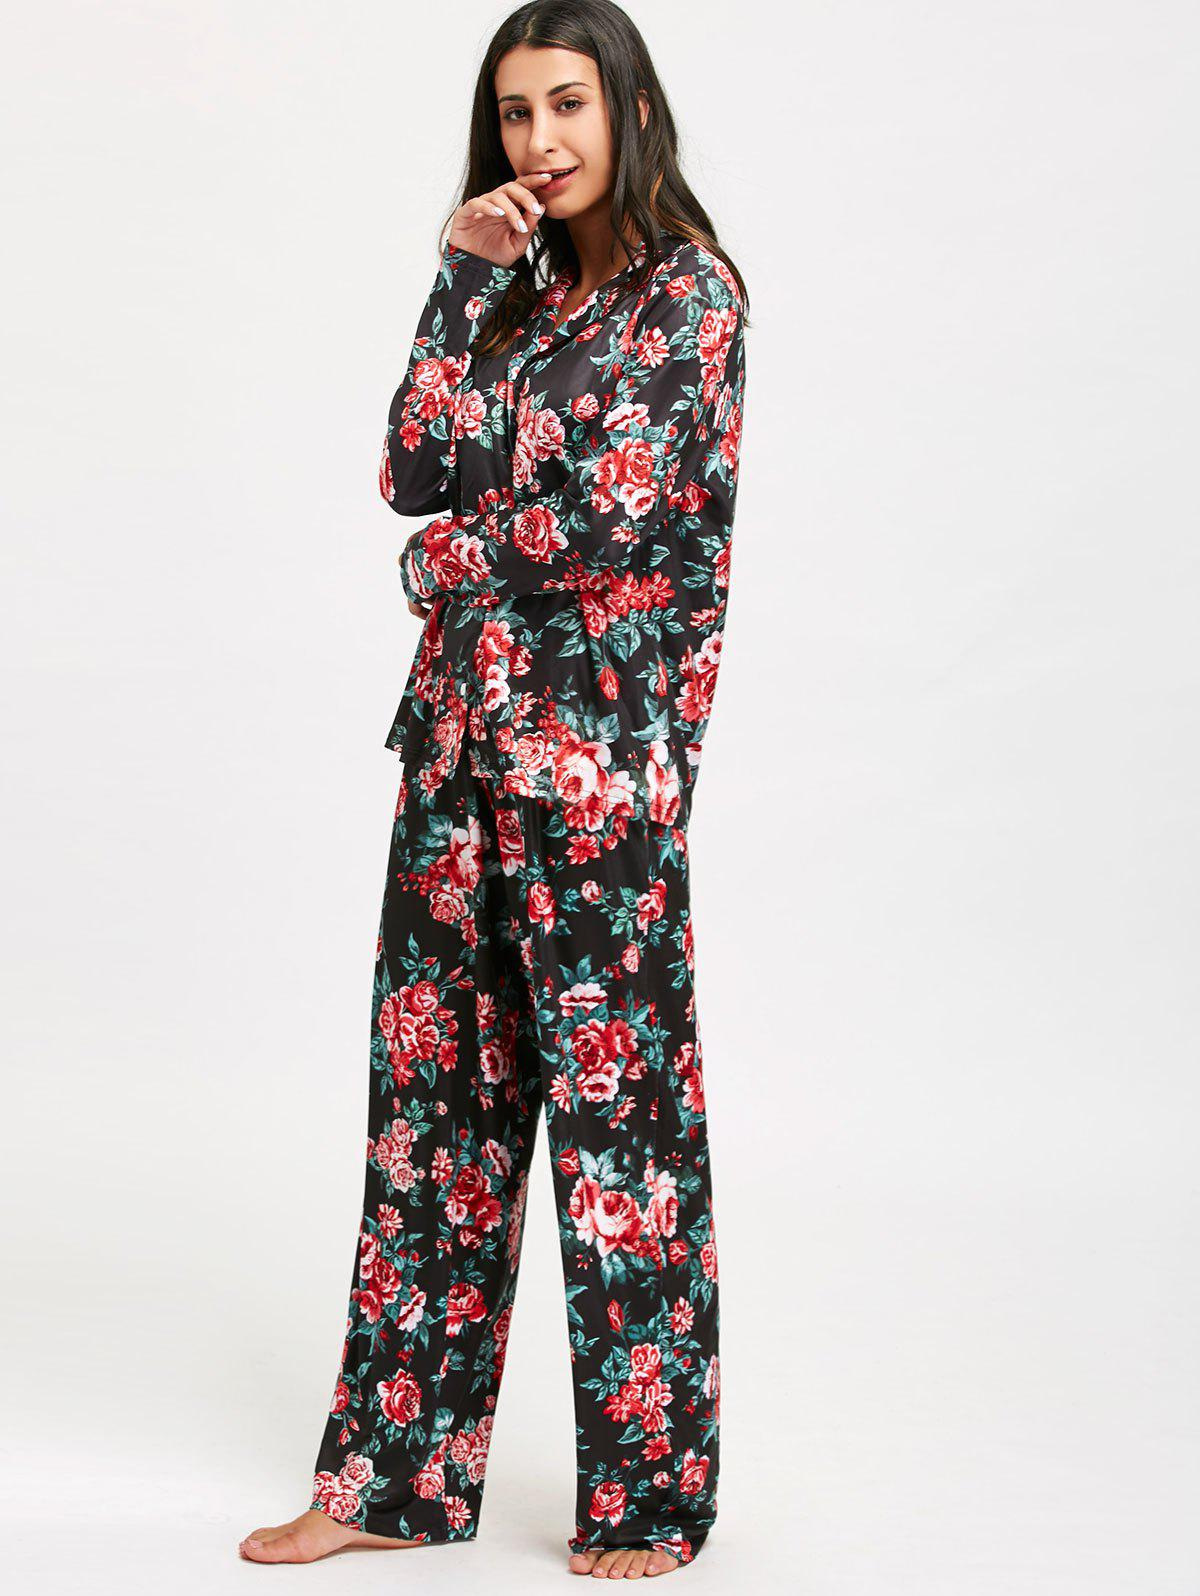 Floral Printed Long Sleeve Pajama Set - COLORMIX 2XL